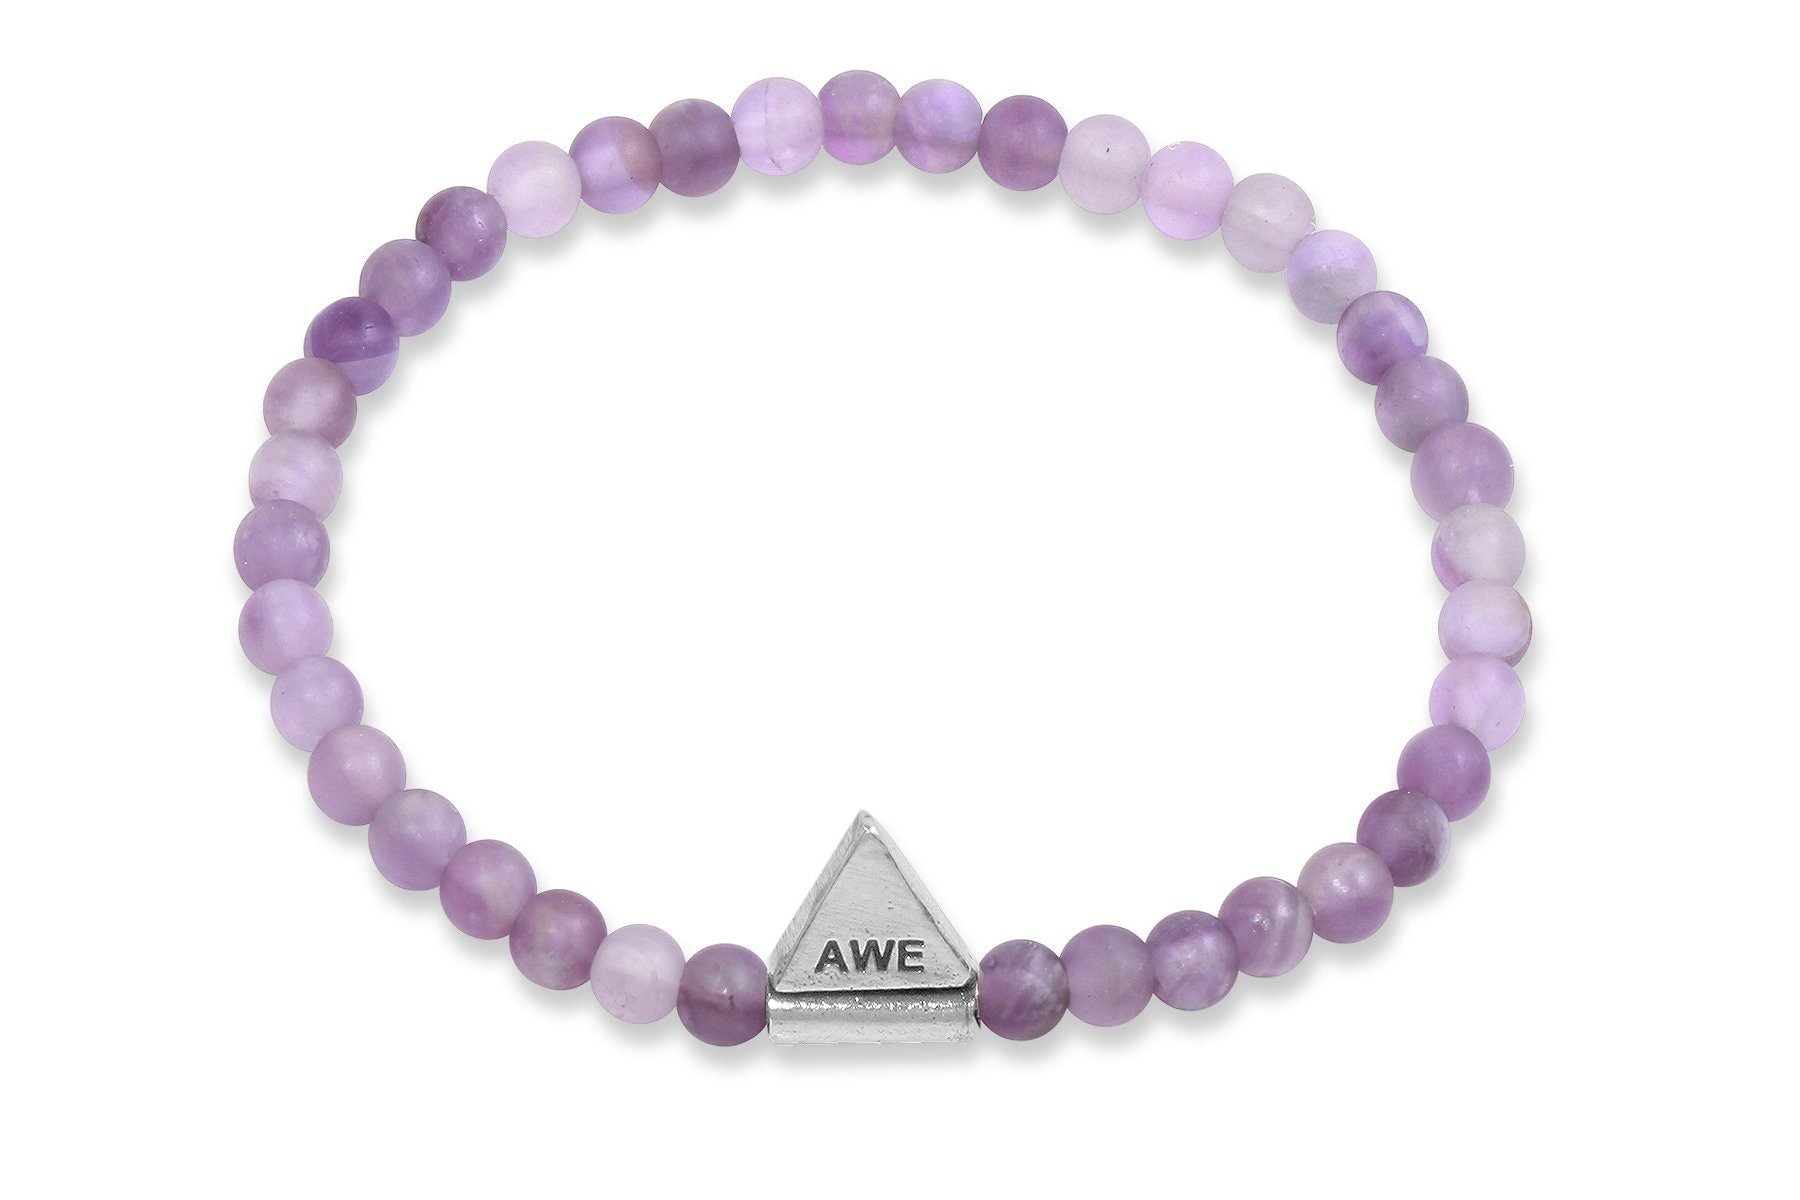 InCompass AWE bracelet - amethyst and sterling silver